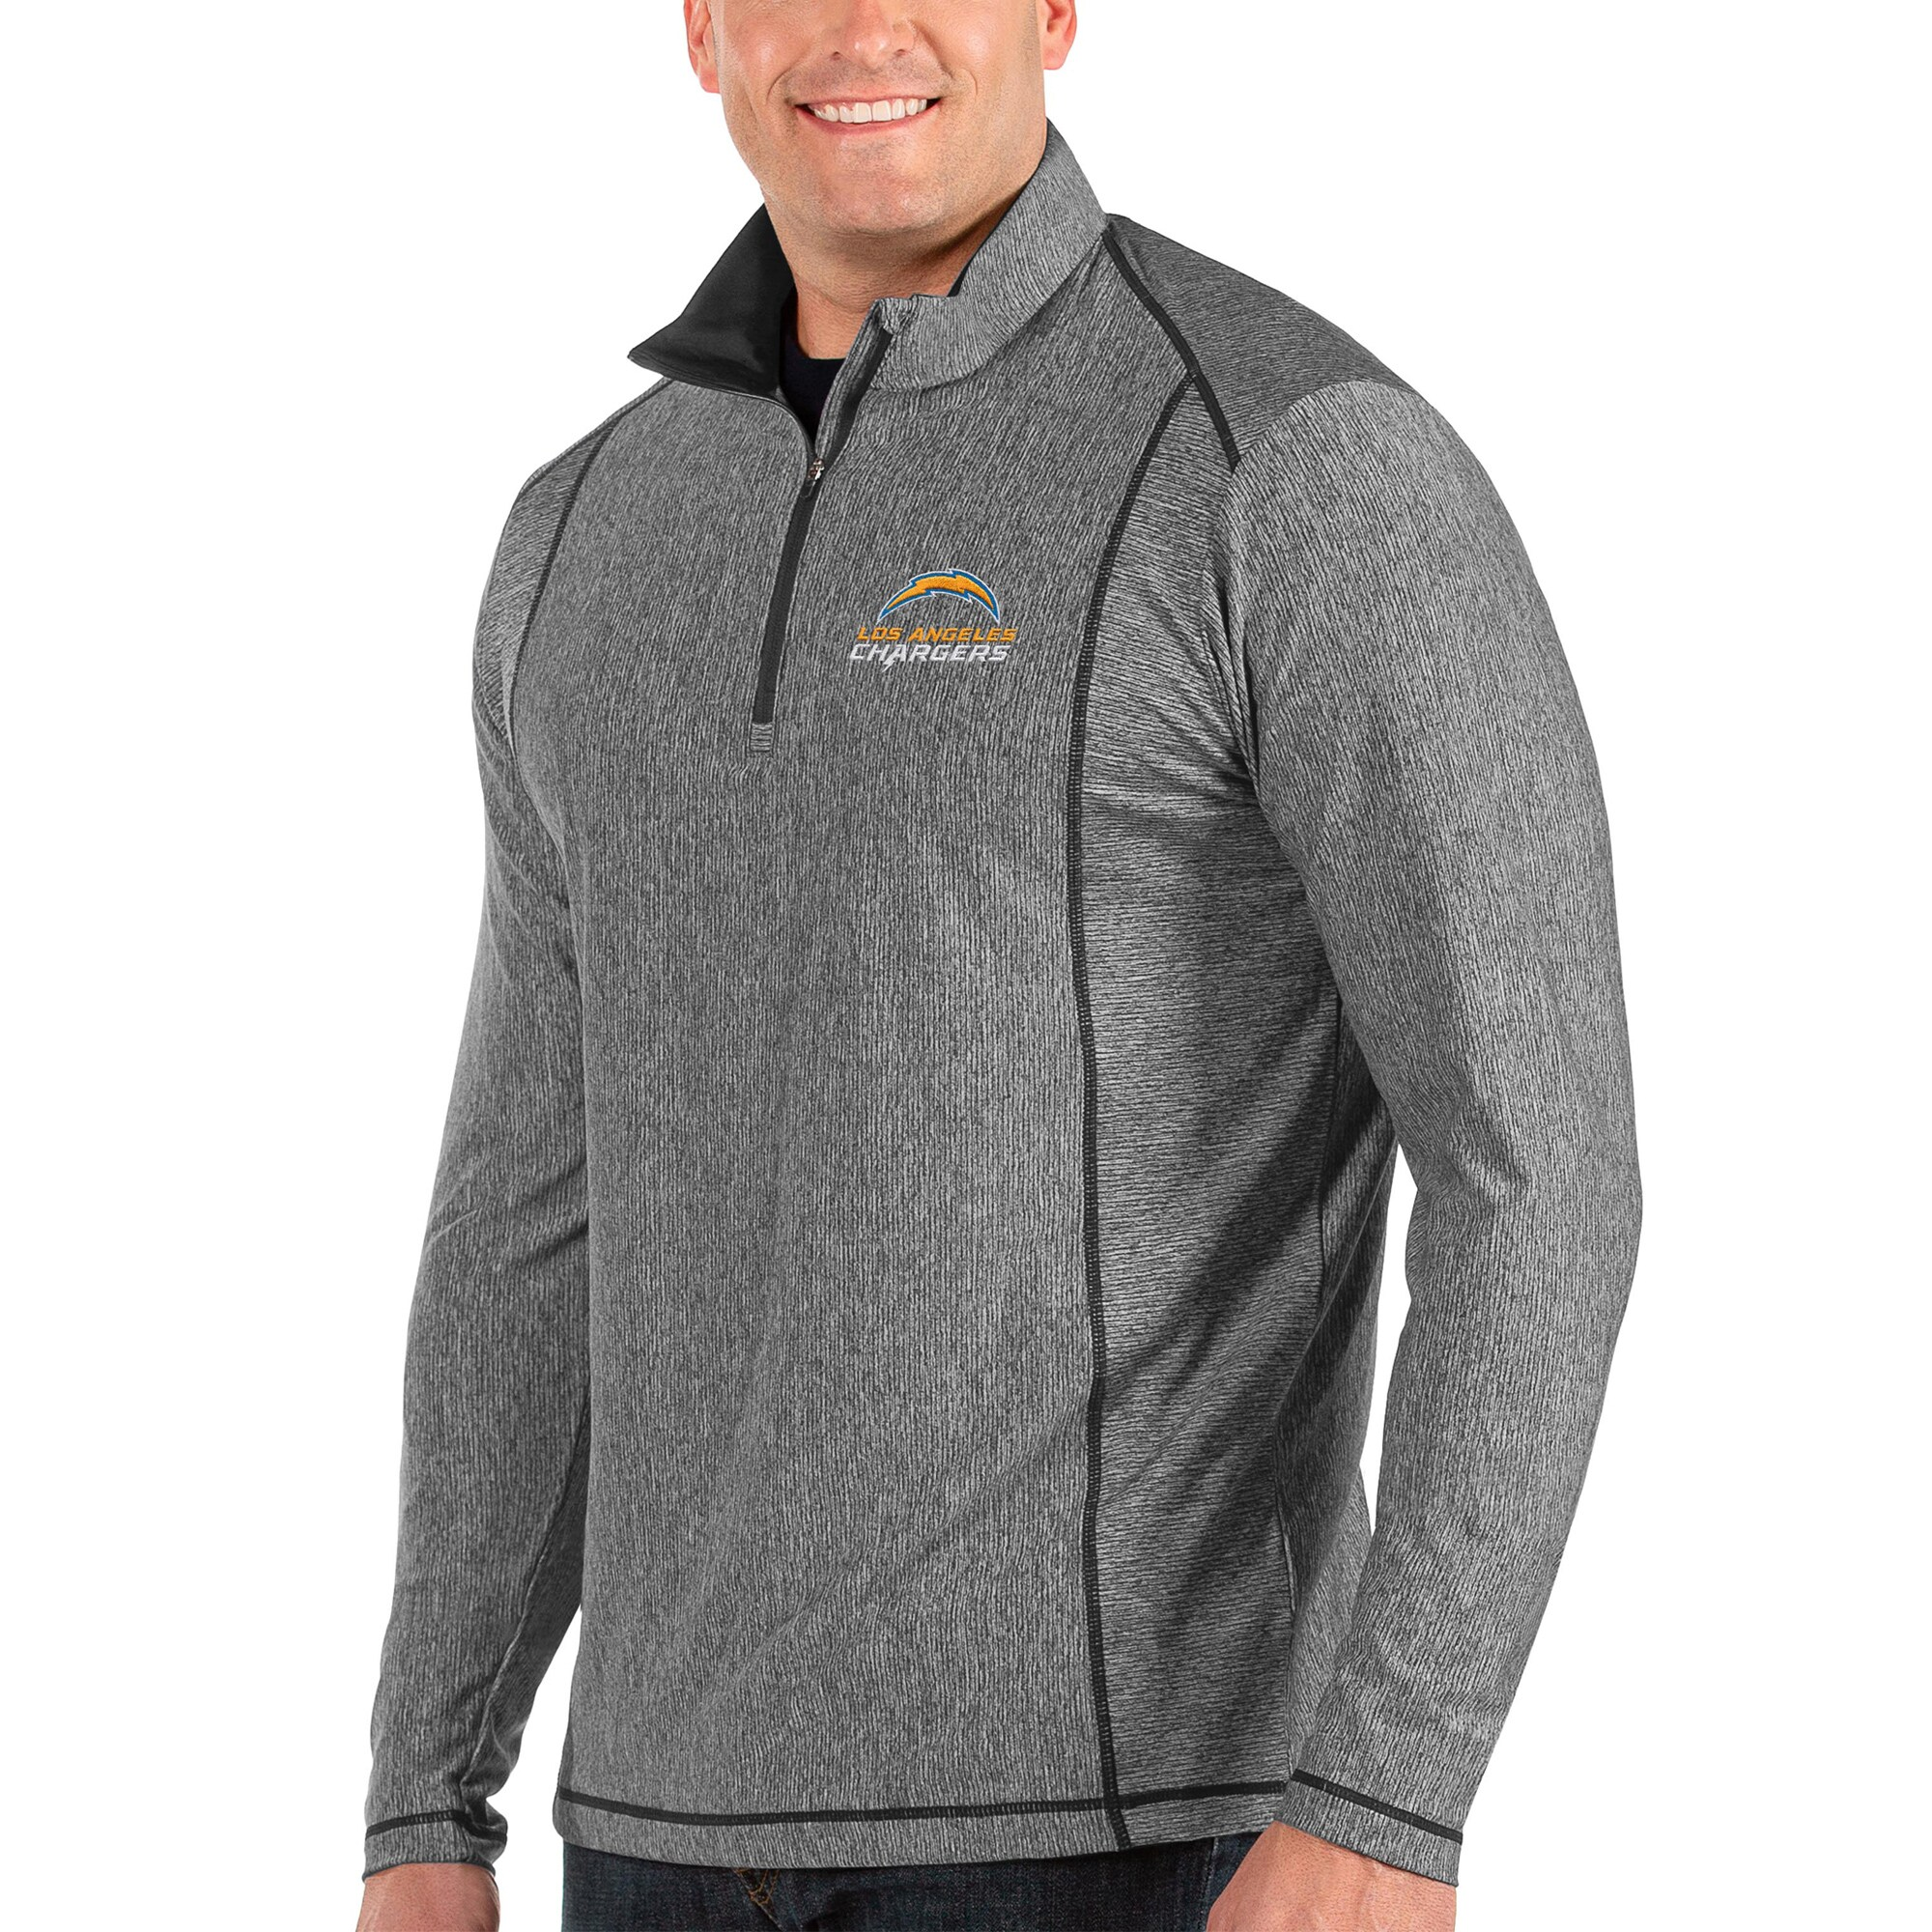 Los Angeles Chargers Antigua Big & Tall Tempo Half-Zip Pullover Jacket - Heather Charcoal